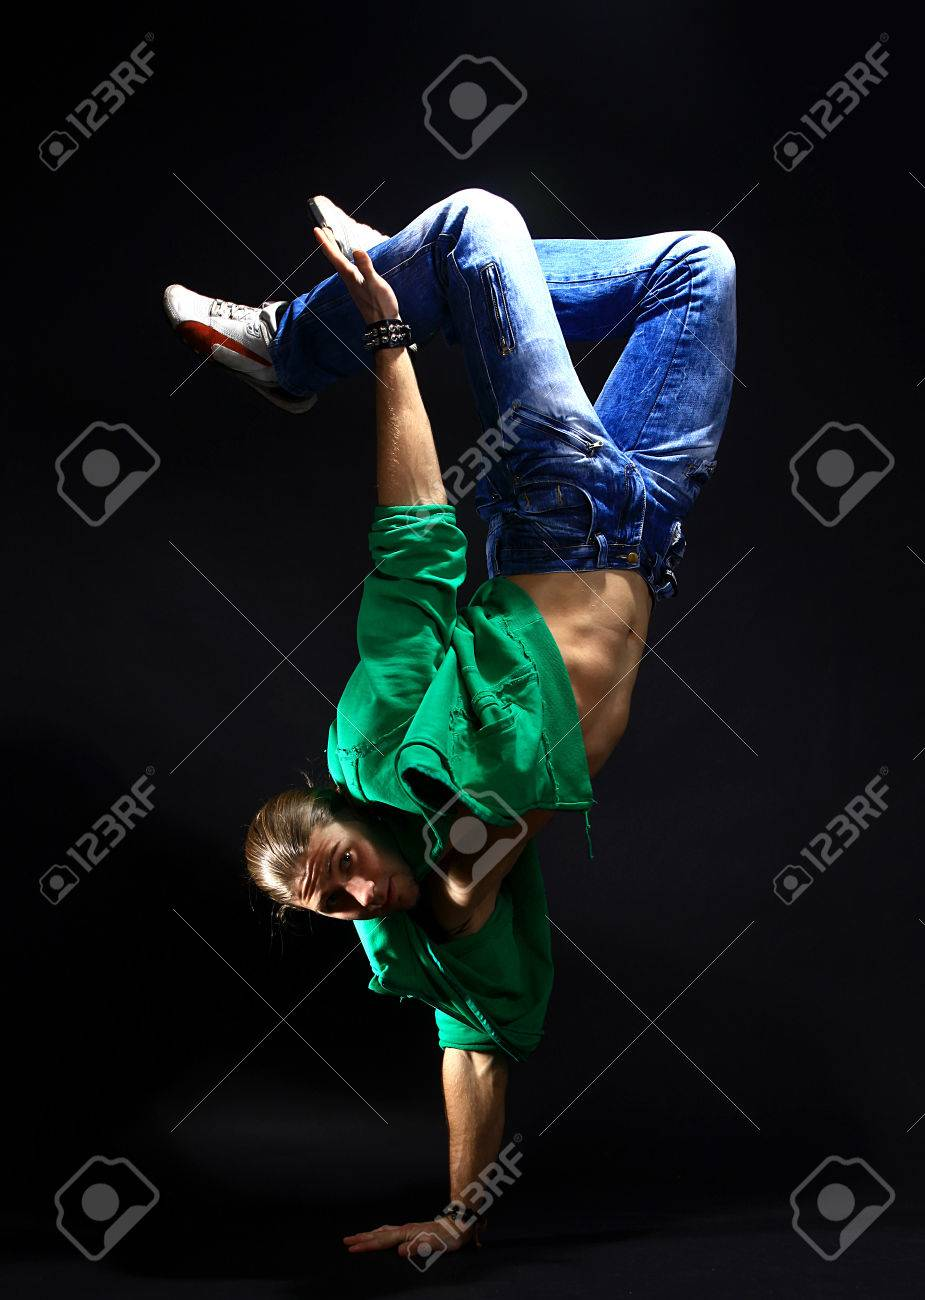 stylish and cool breakdance style dancer posing stock photo picture